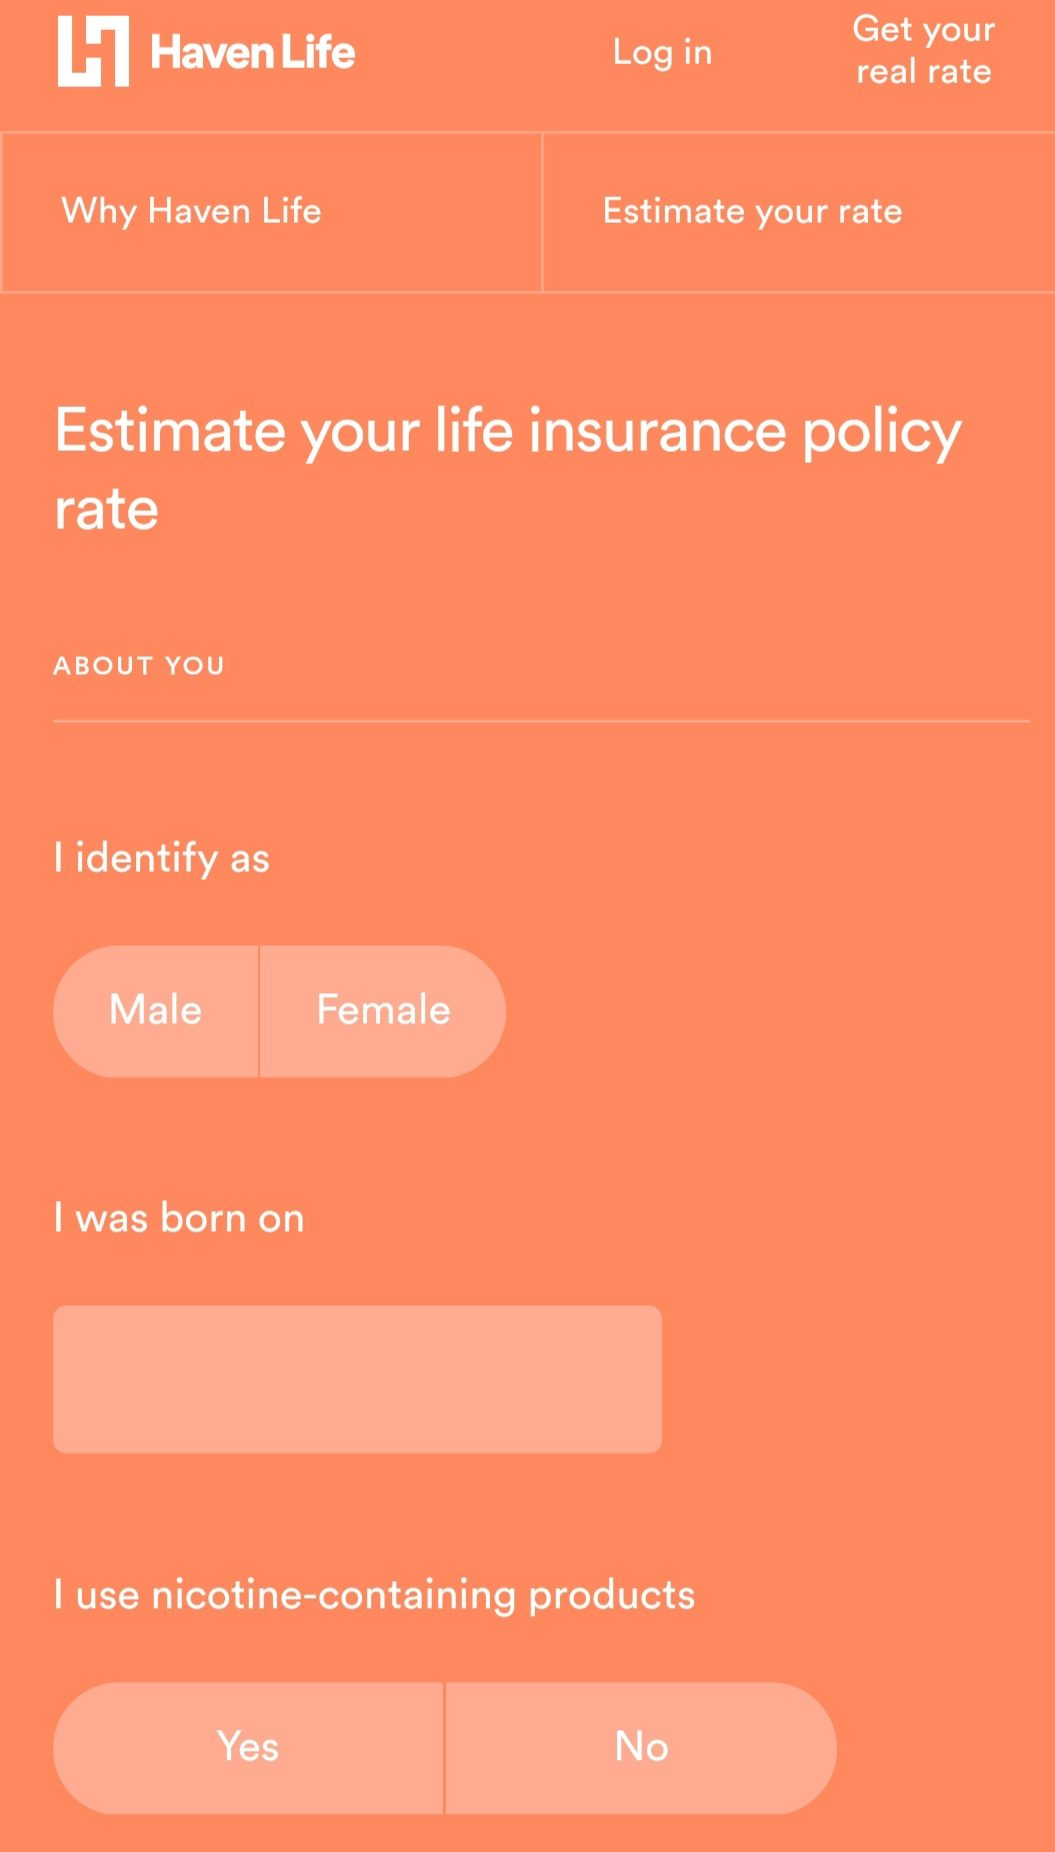 Haven Life mobile quote tool